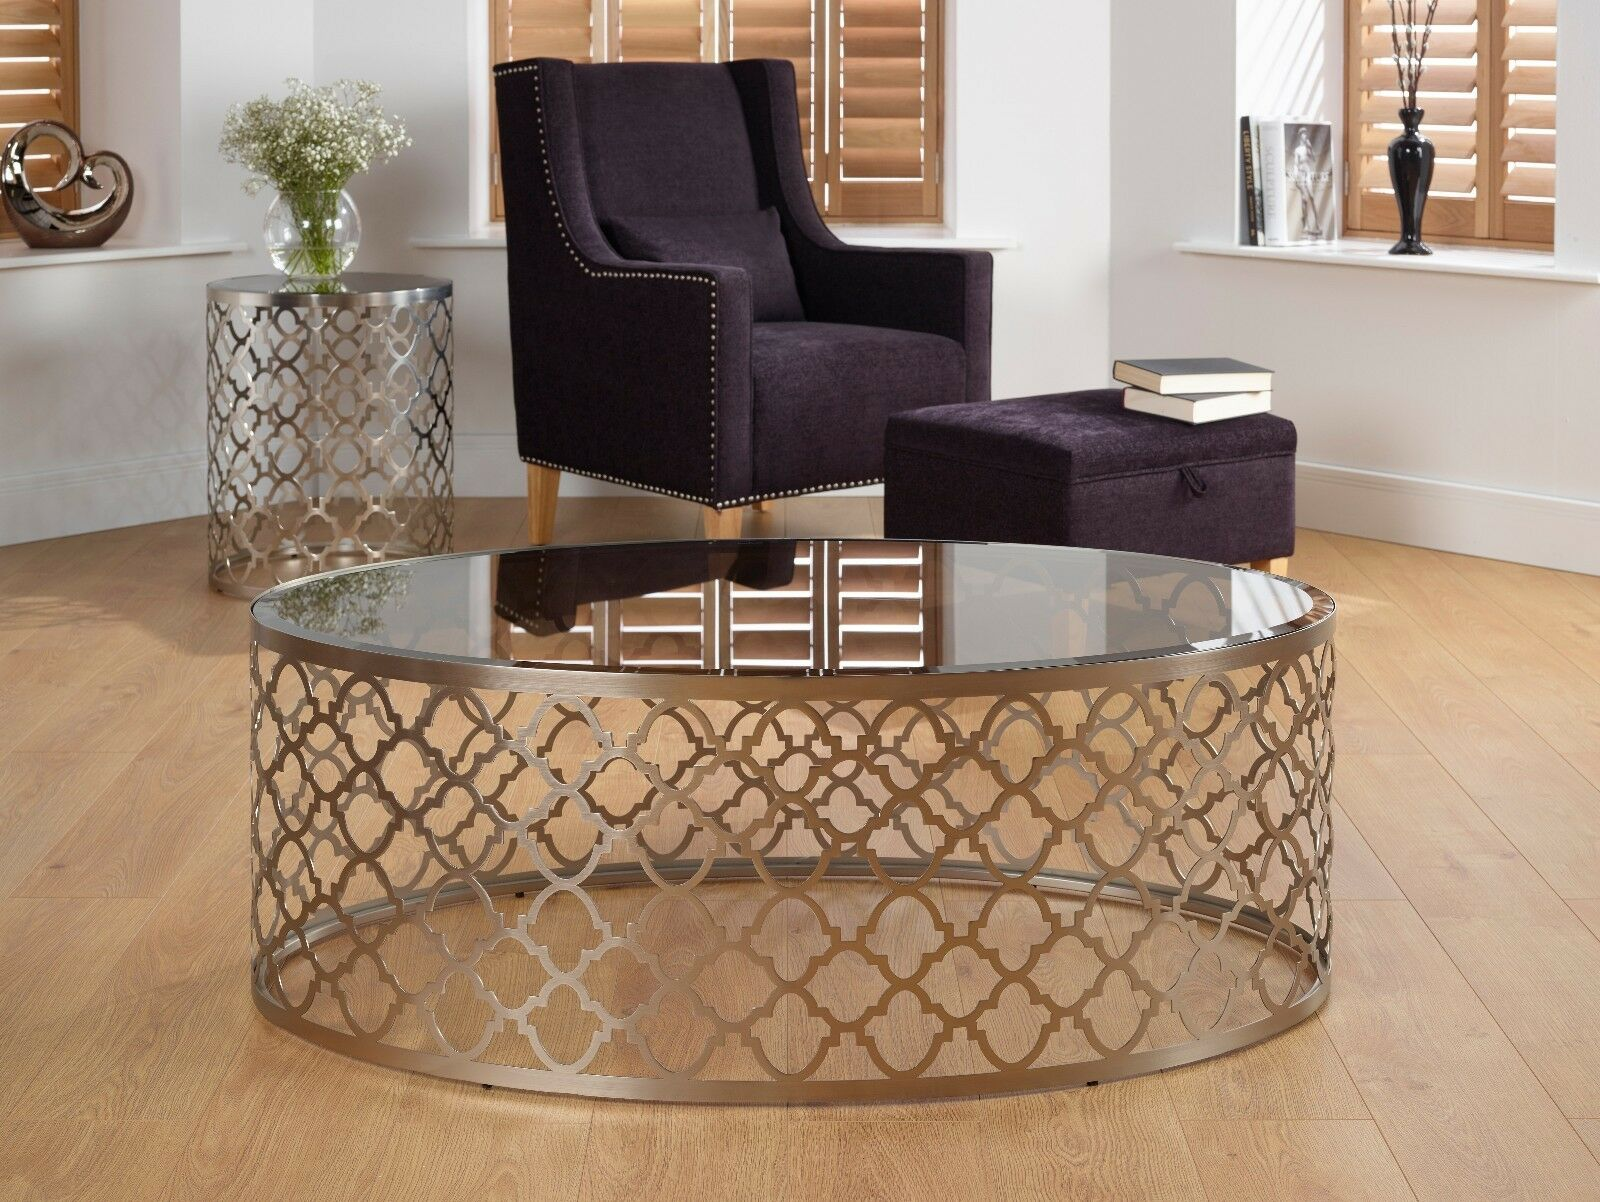 Zenith Oval Glass Top Coffee Table Laser Cut With Satin Metal Base